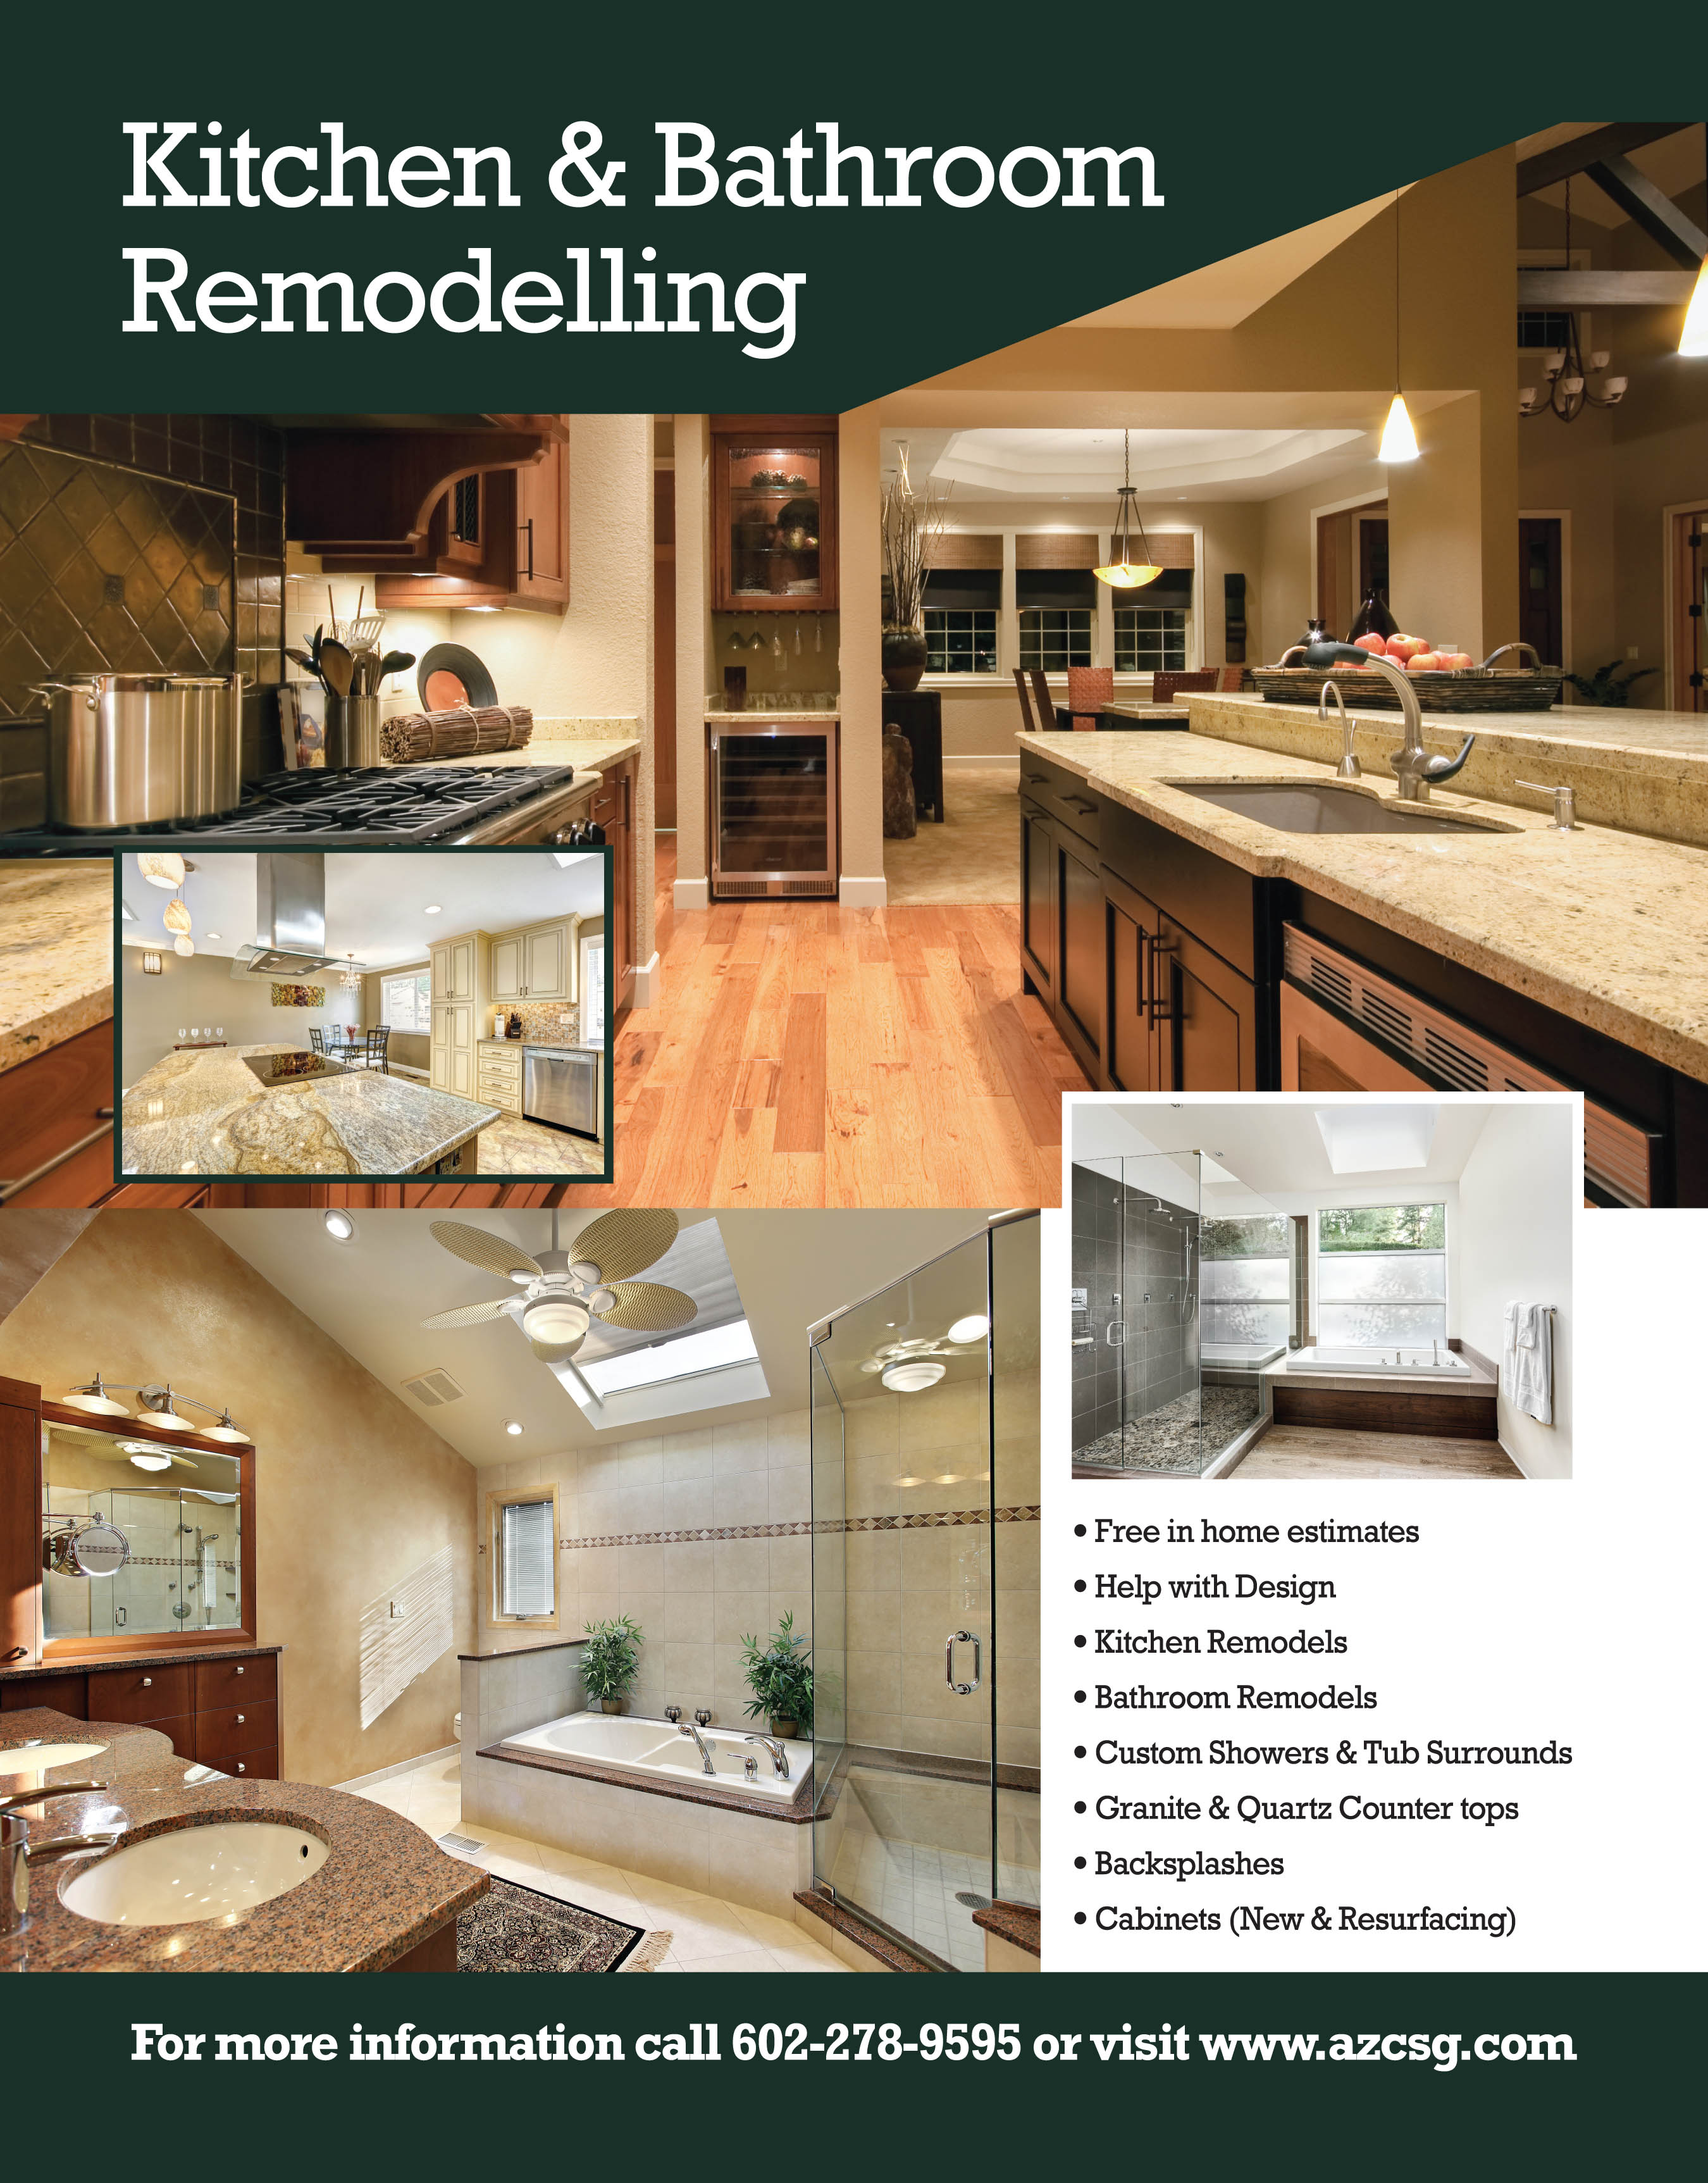 BATHROOM REMODELING PHOENIX AZ - Gilbert bathroom remodeling